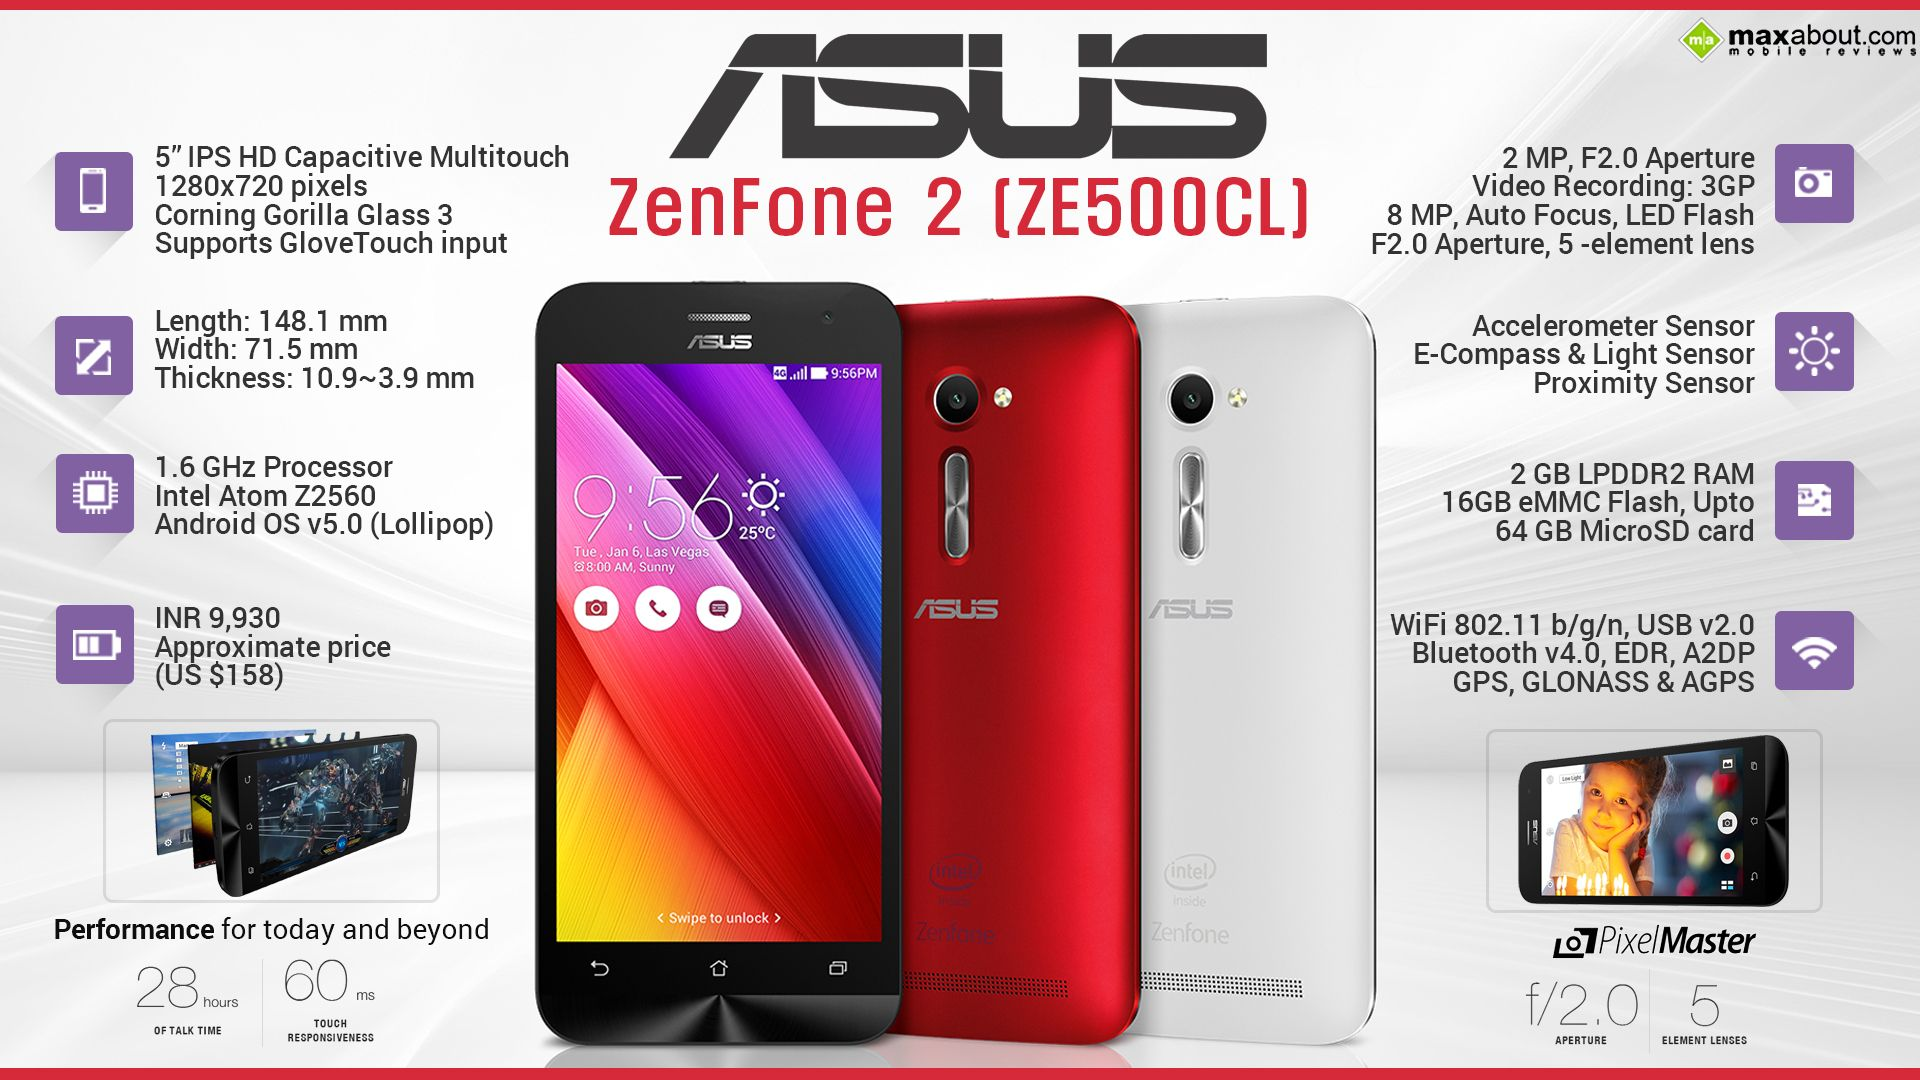 Hd wallpaper for android 5 5 inch - Asus Zenfone 2 Ze500cl With 5 Inch Hd Display 1 6ghz Intel Atom